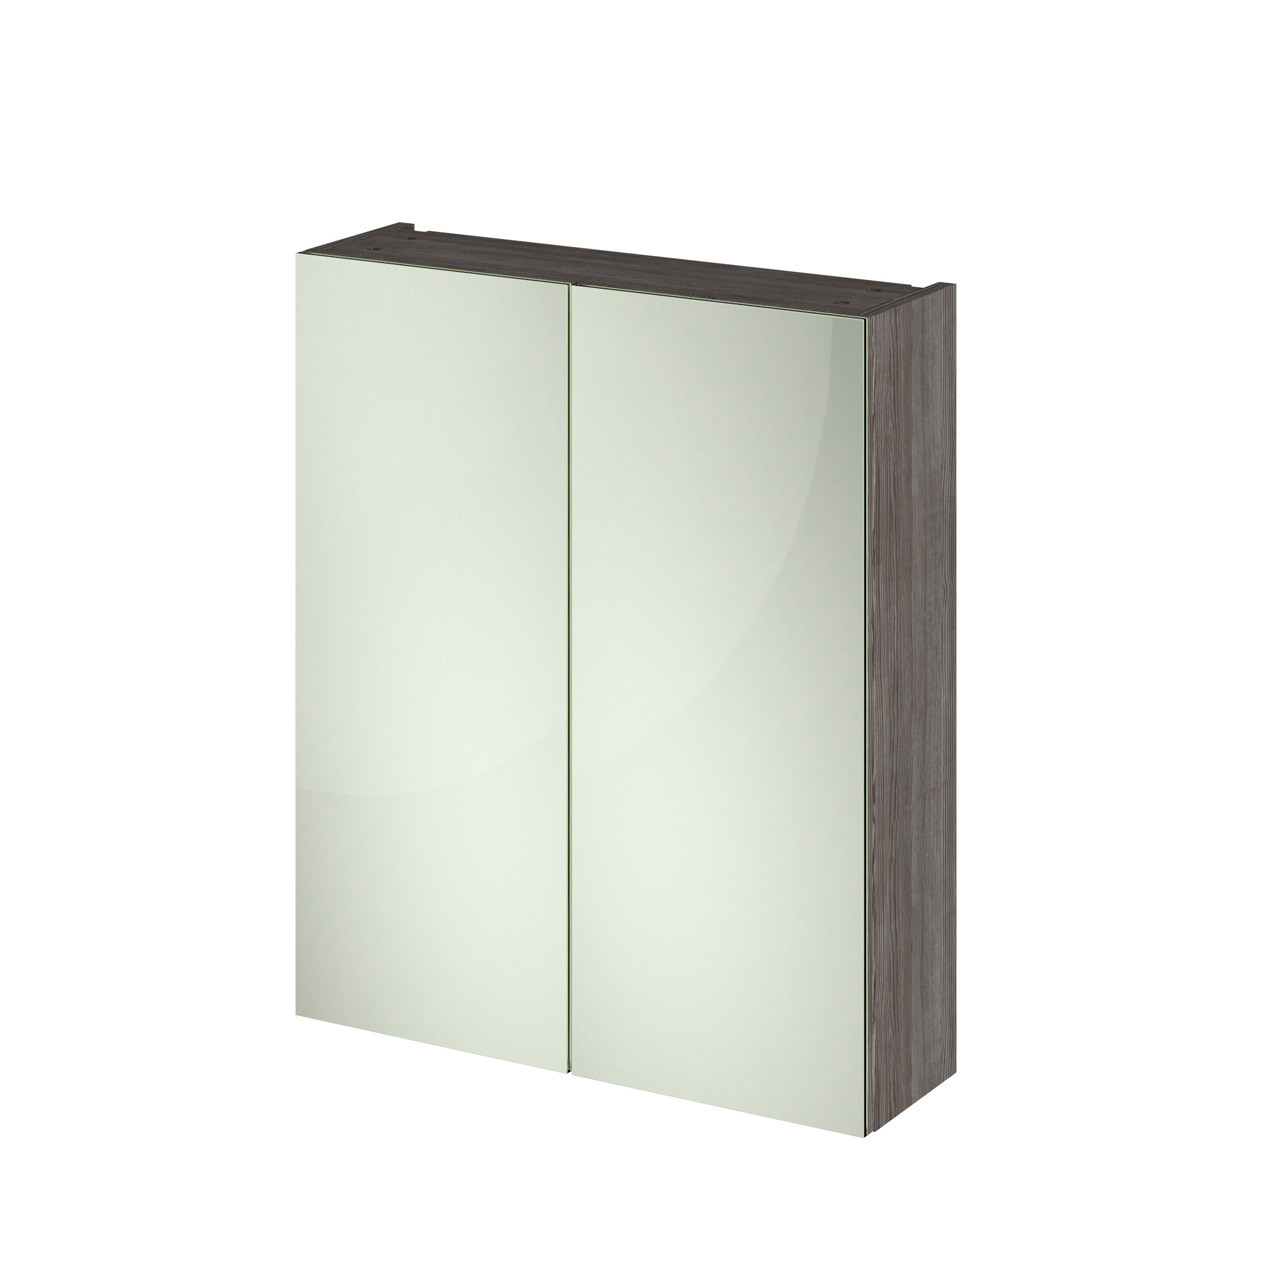 Hudson Reed 600 Fitted Mirror Unit (50/50) 715mm x 600mm x 182mm - OFF517